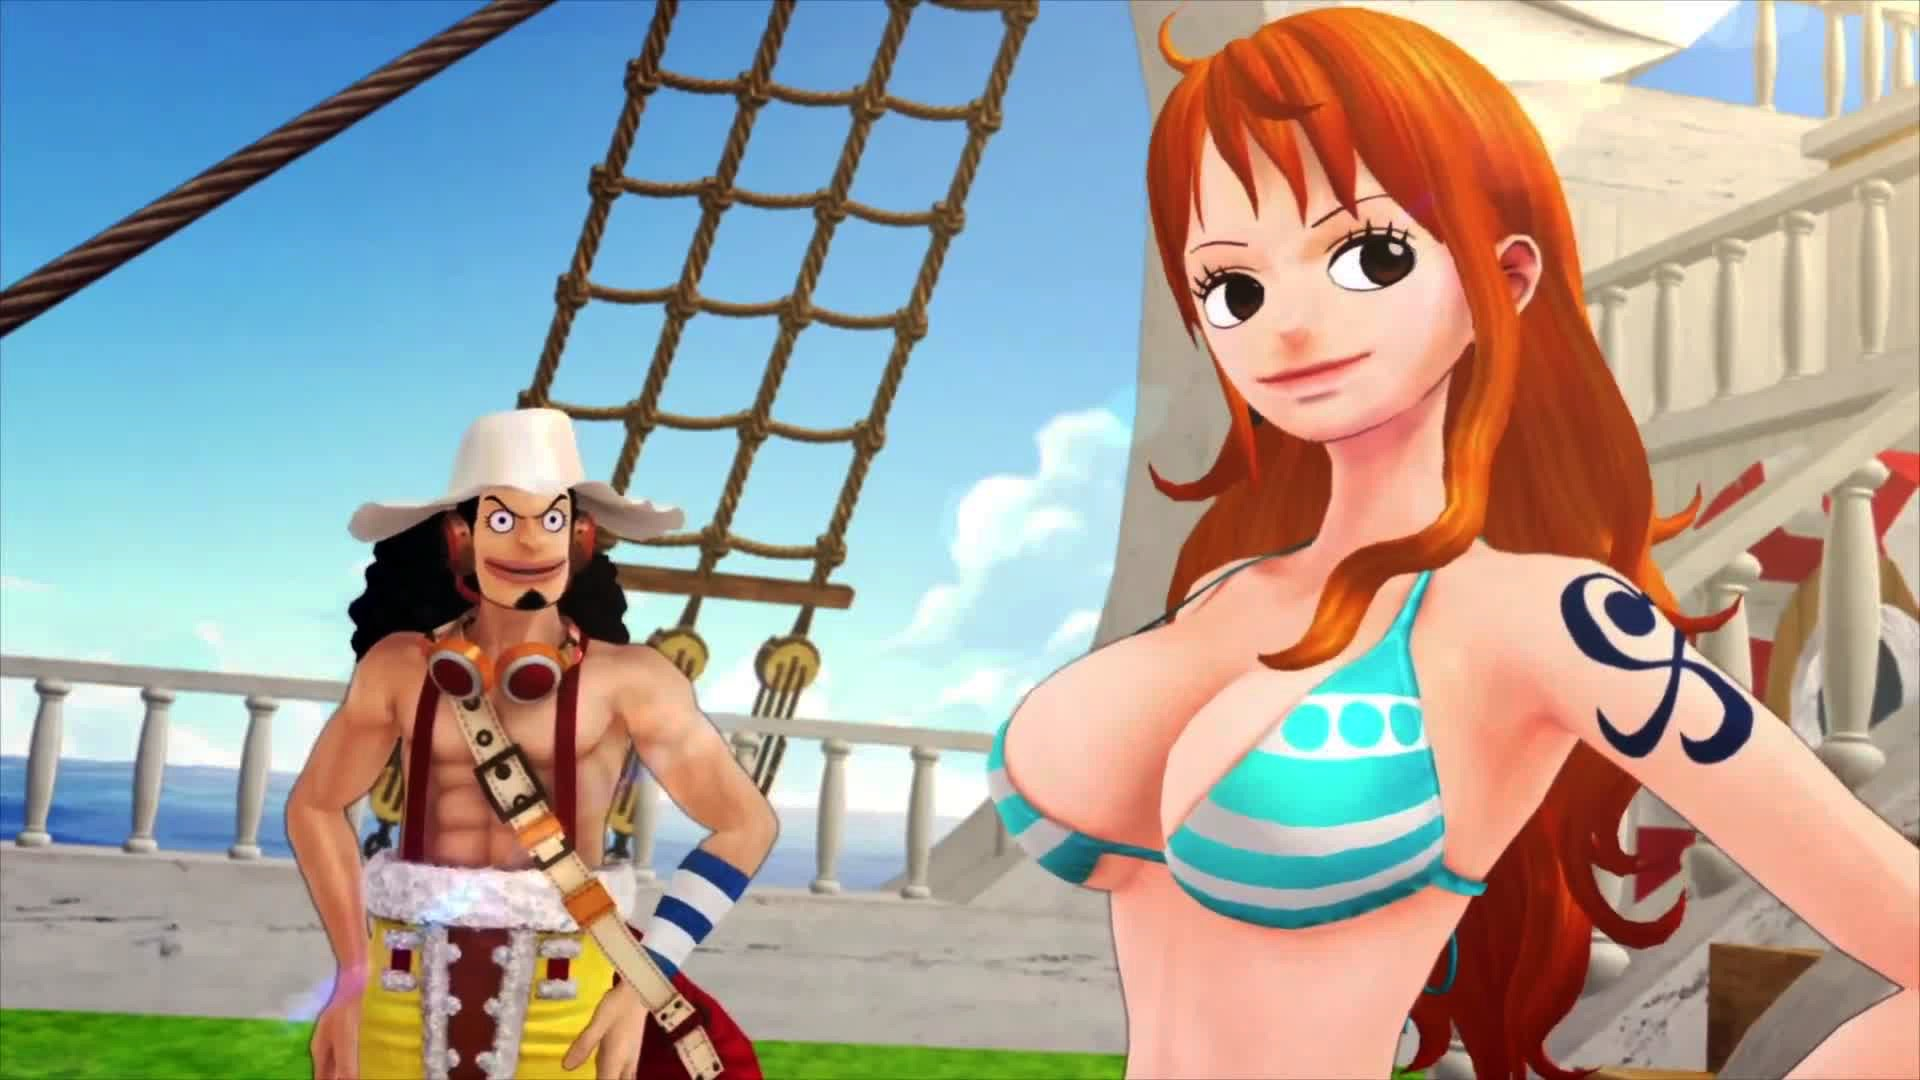 One piece pirate warriors nude mod smut videos